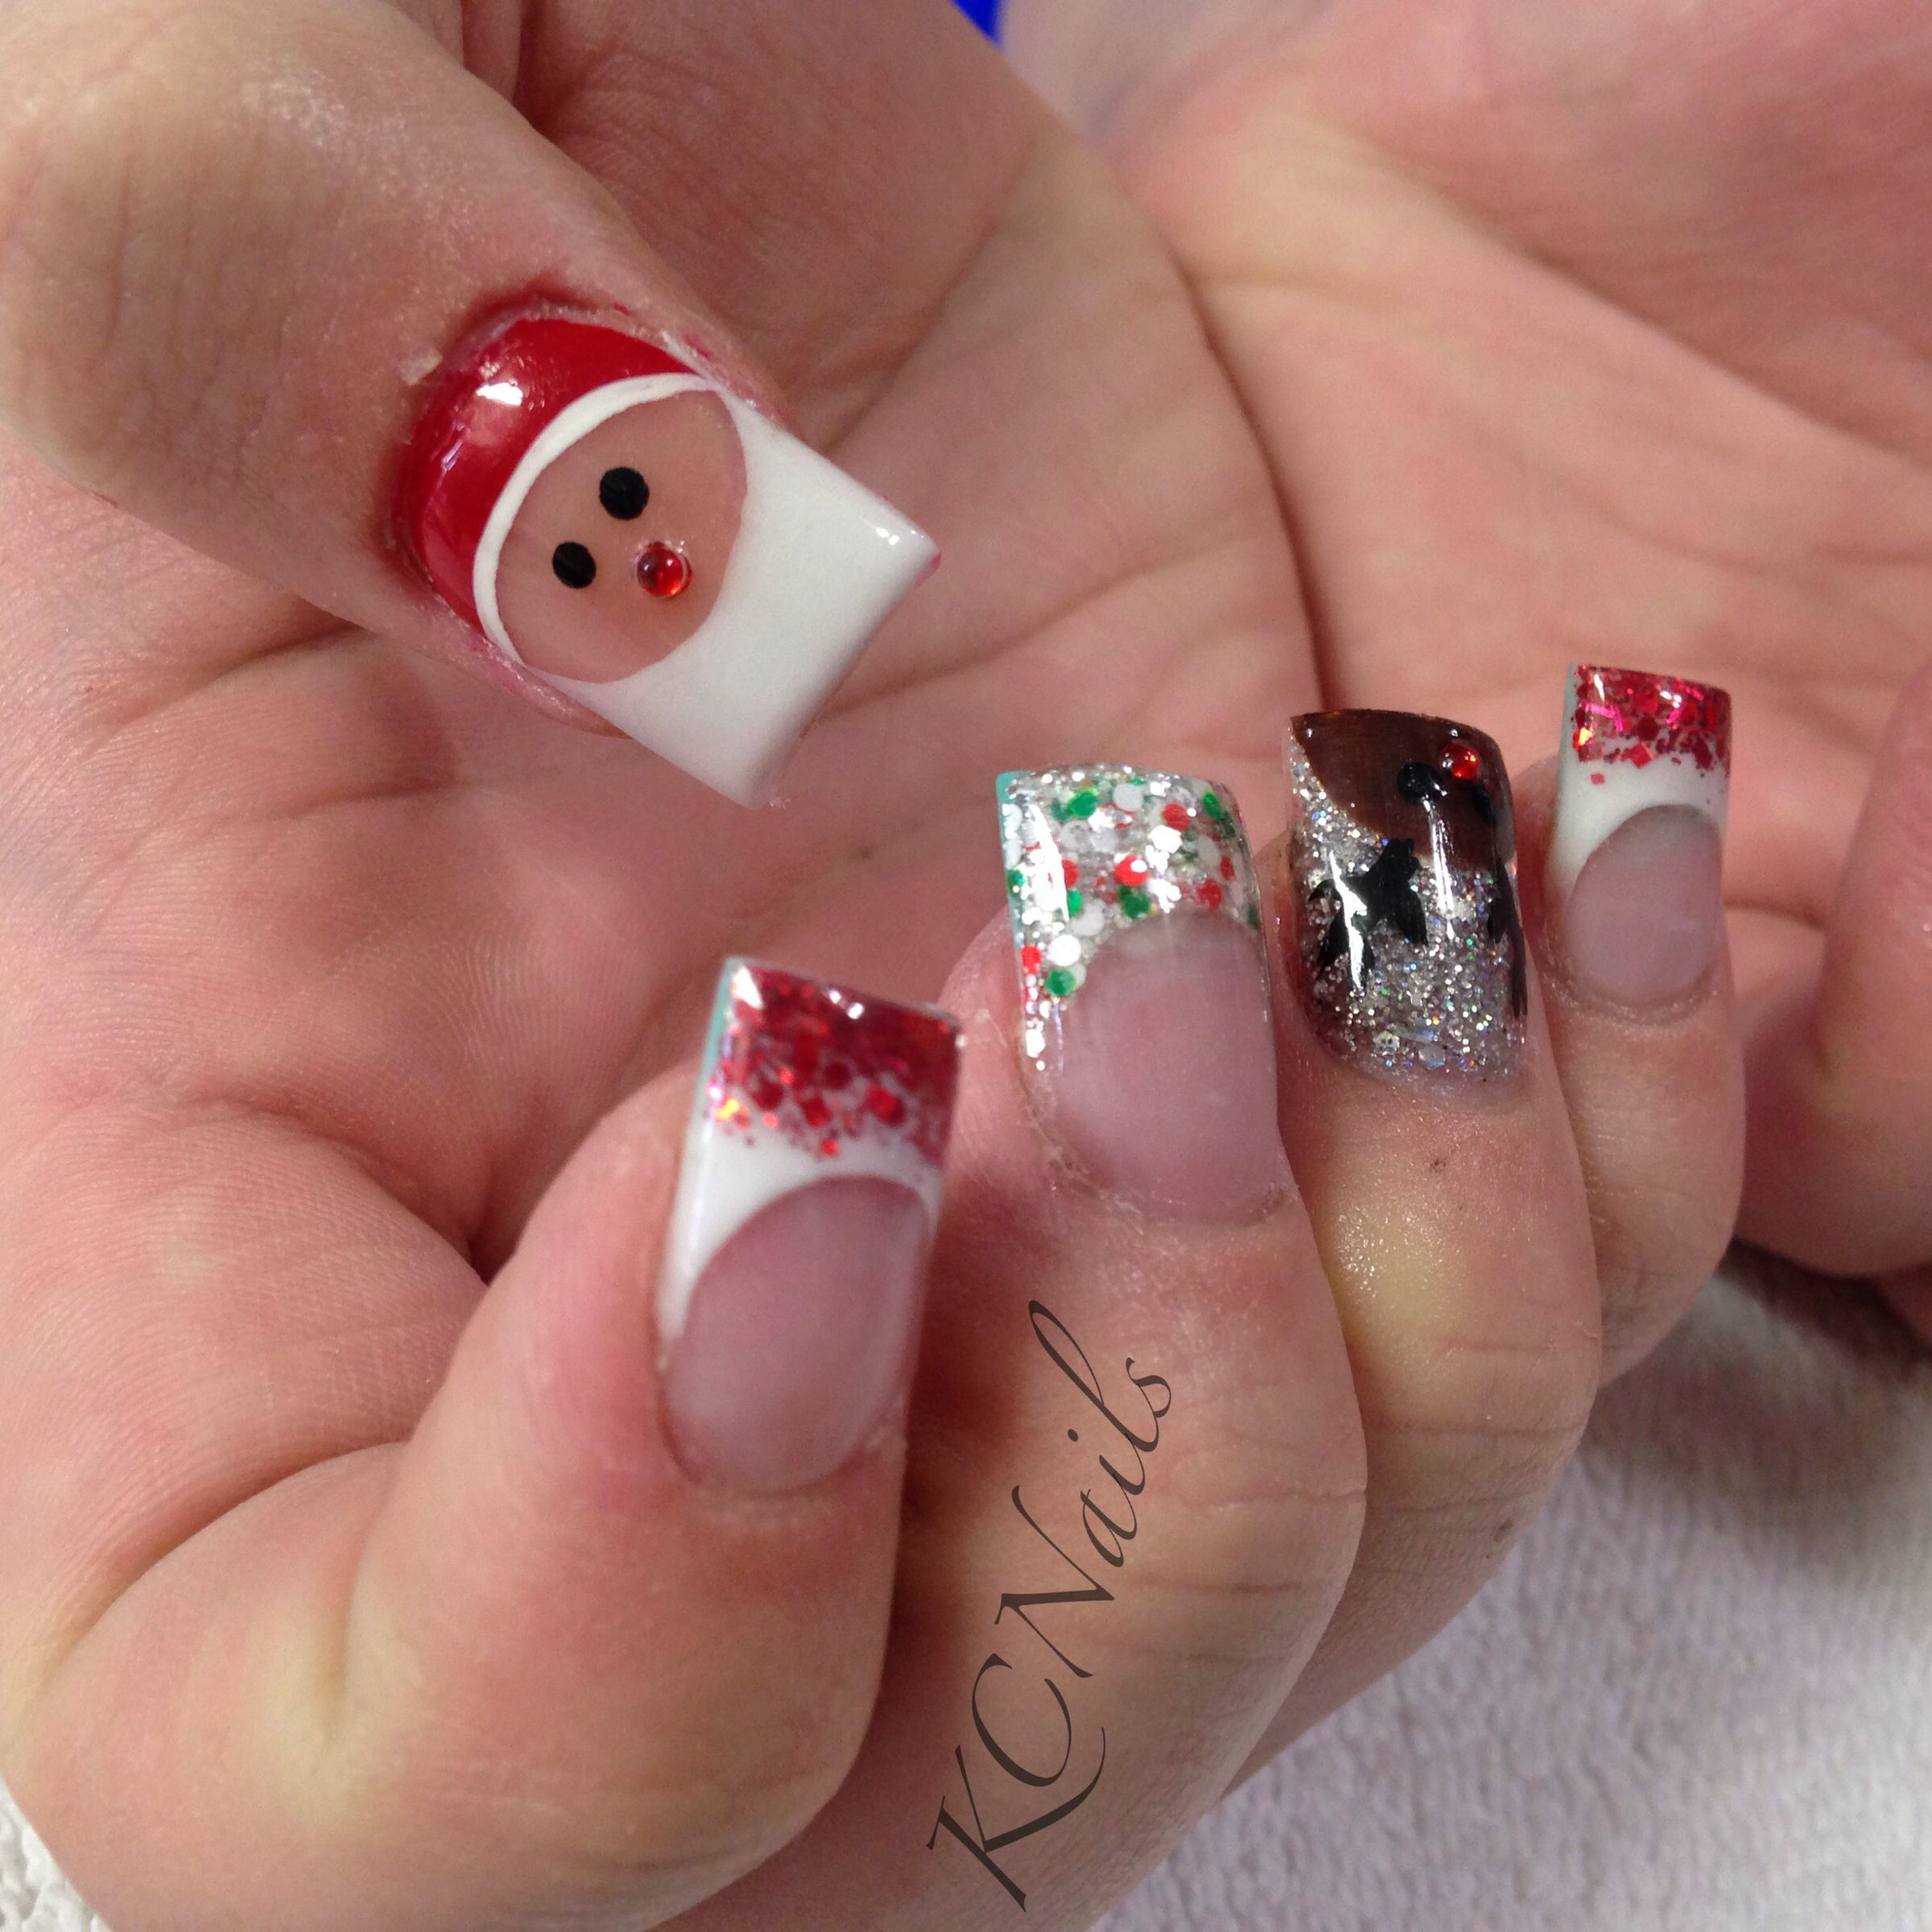 Christmas Nails Santa And Reindeer Hand Painted Nail Art Pink And White Acrylic Nails With A Red And Green Gli Xmas Nails White Acrylic Nails Christmas Nails